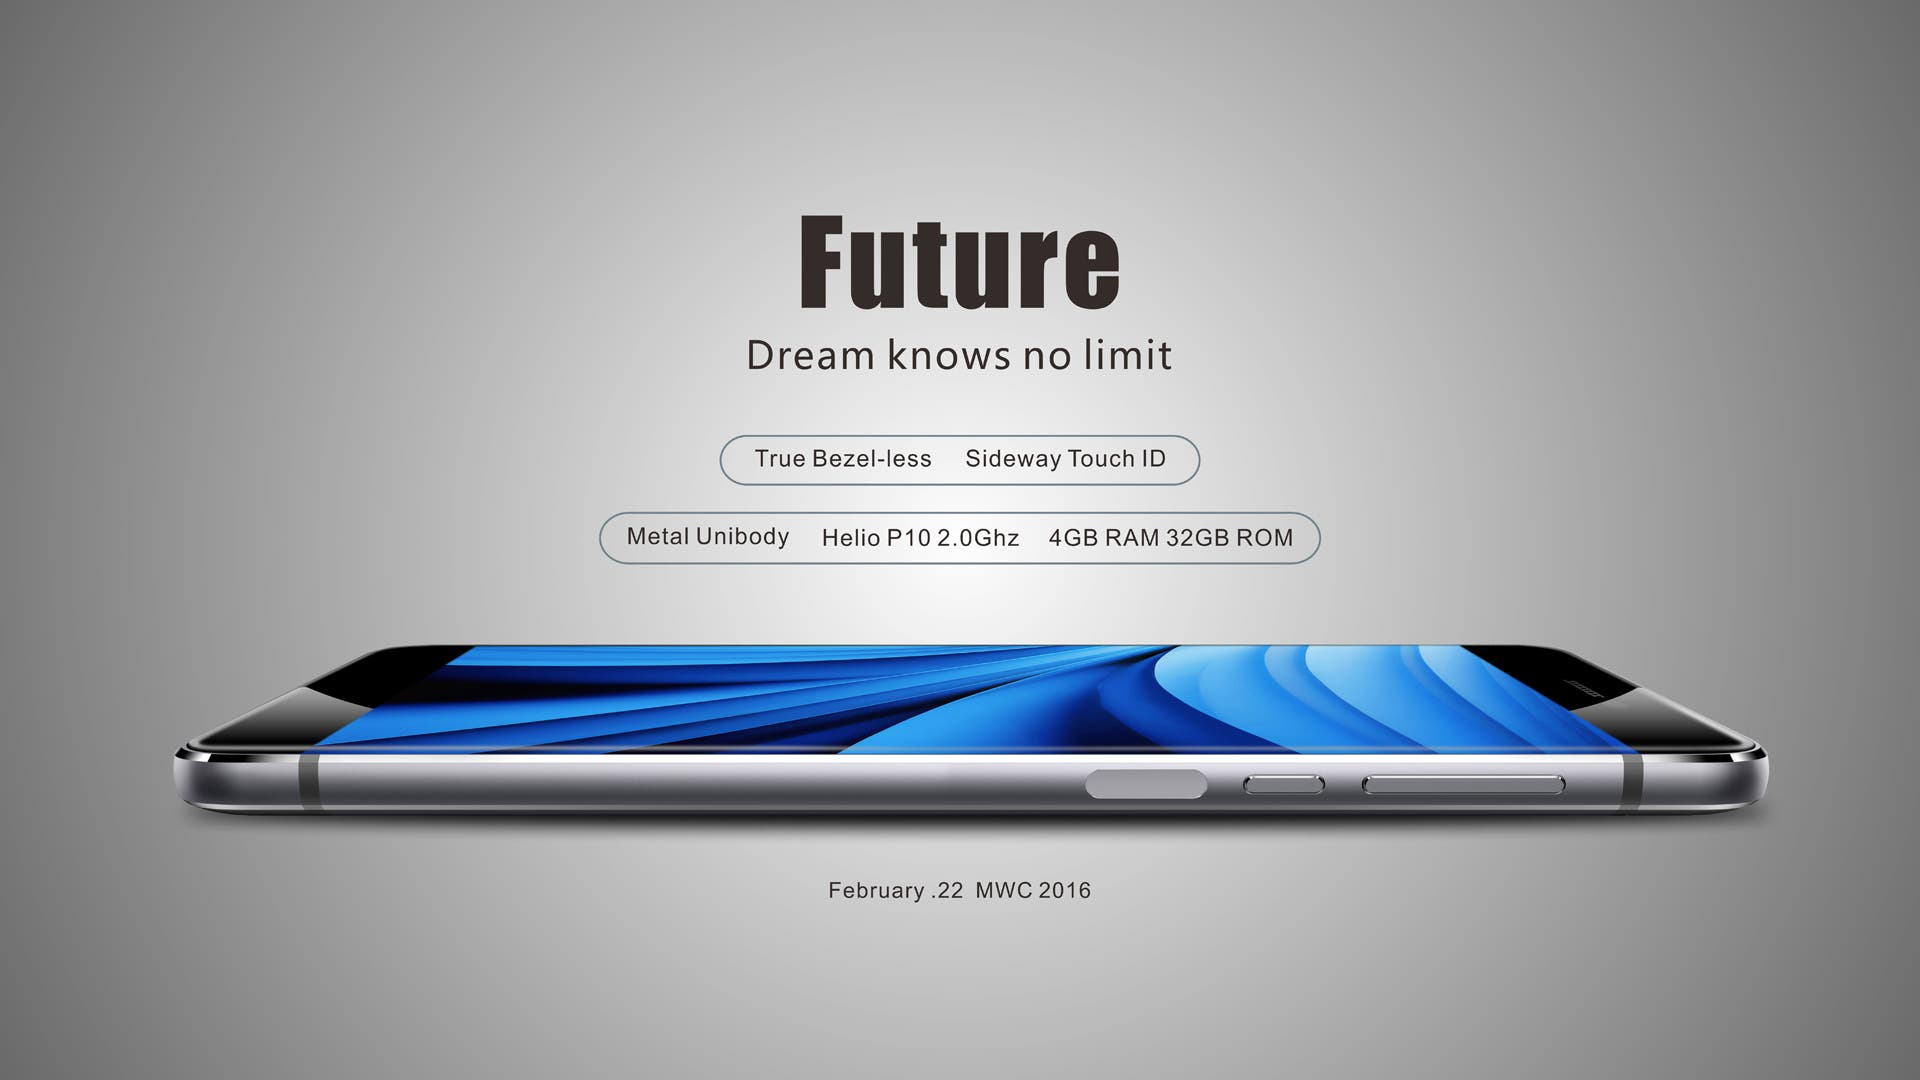 ulefone future side fingerprint scanner